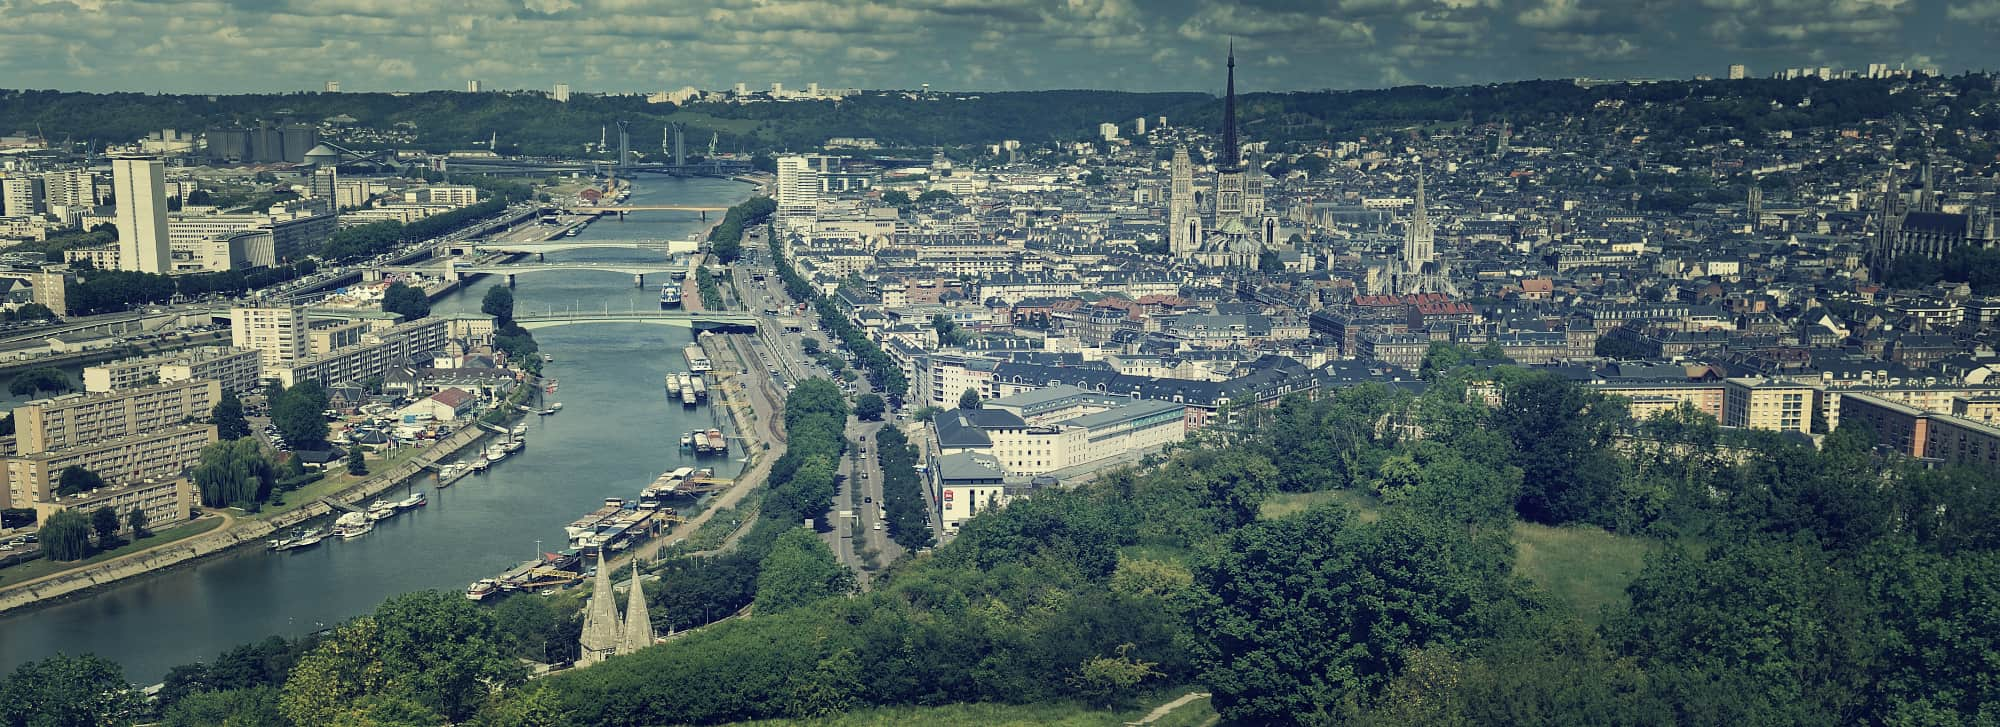 Kurtaxe in Rouen Capital of Normandy Panorama Colline Sainte Catherine Rouen Normandie